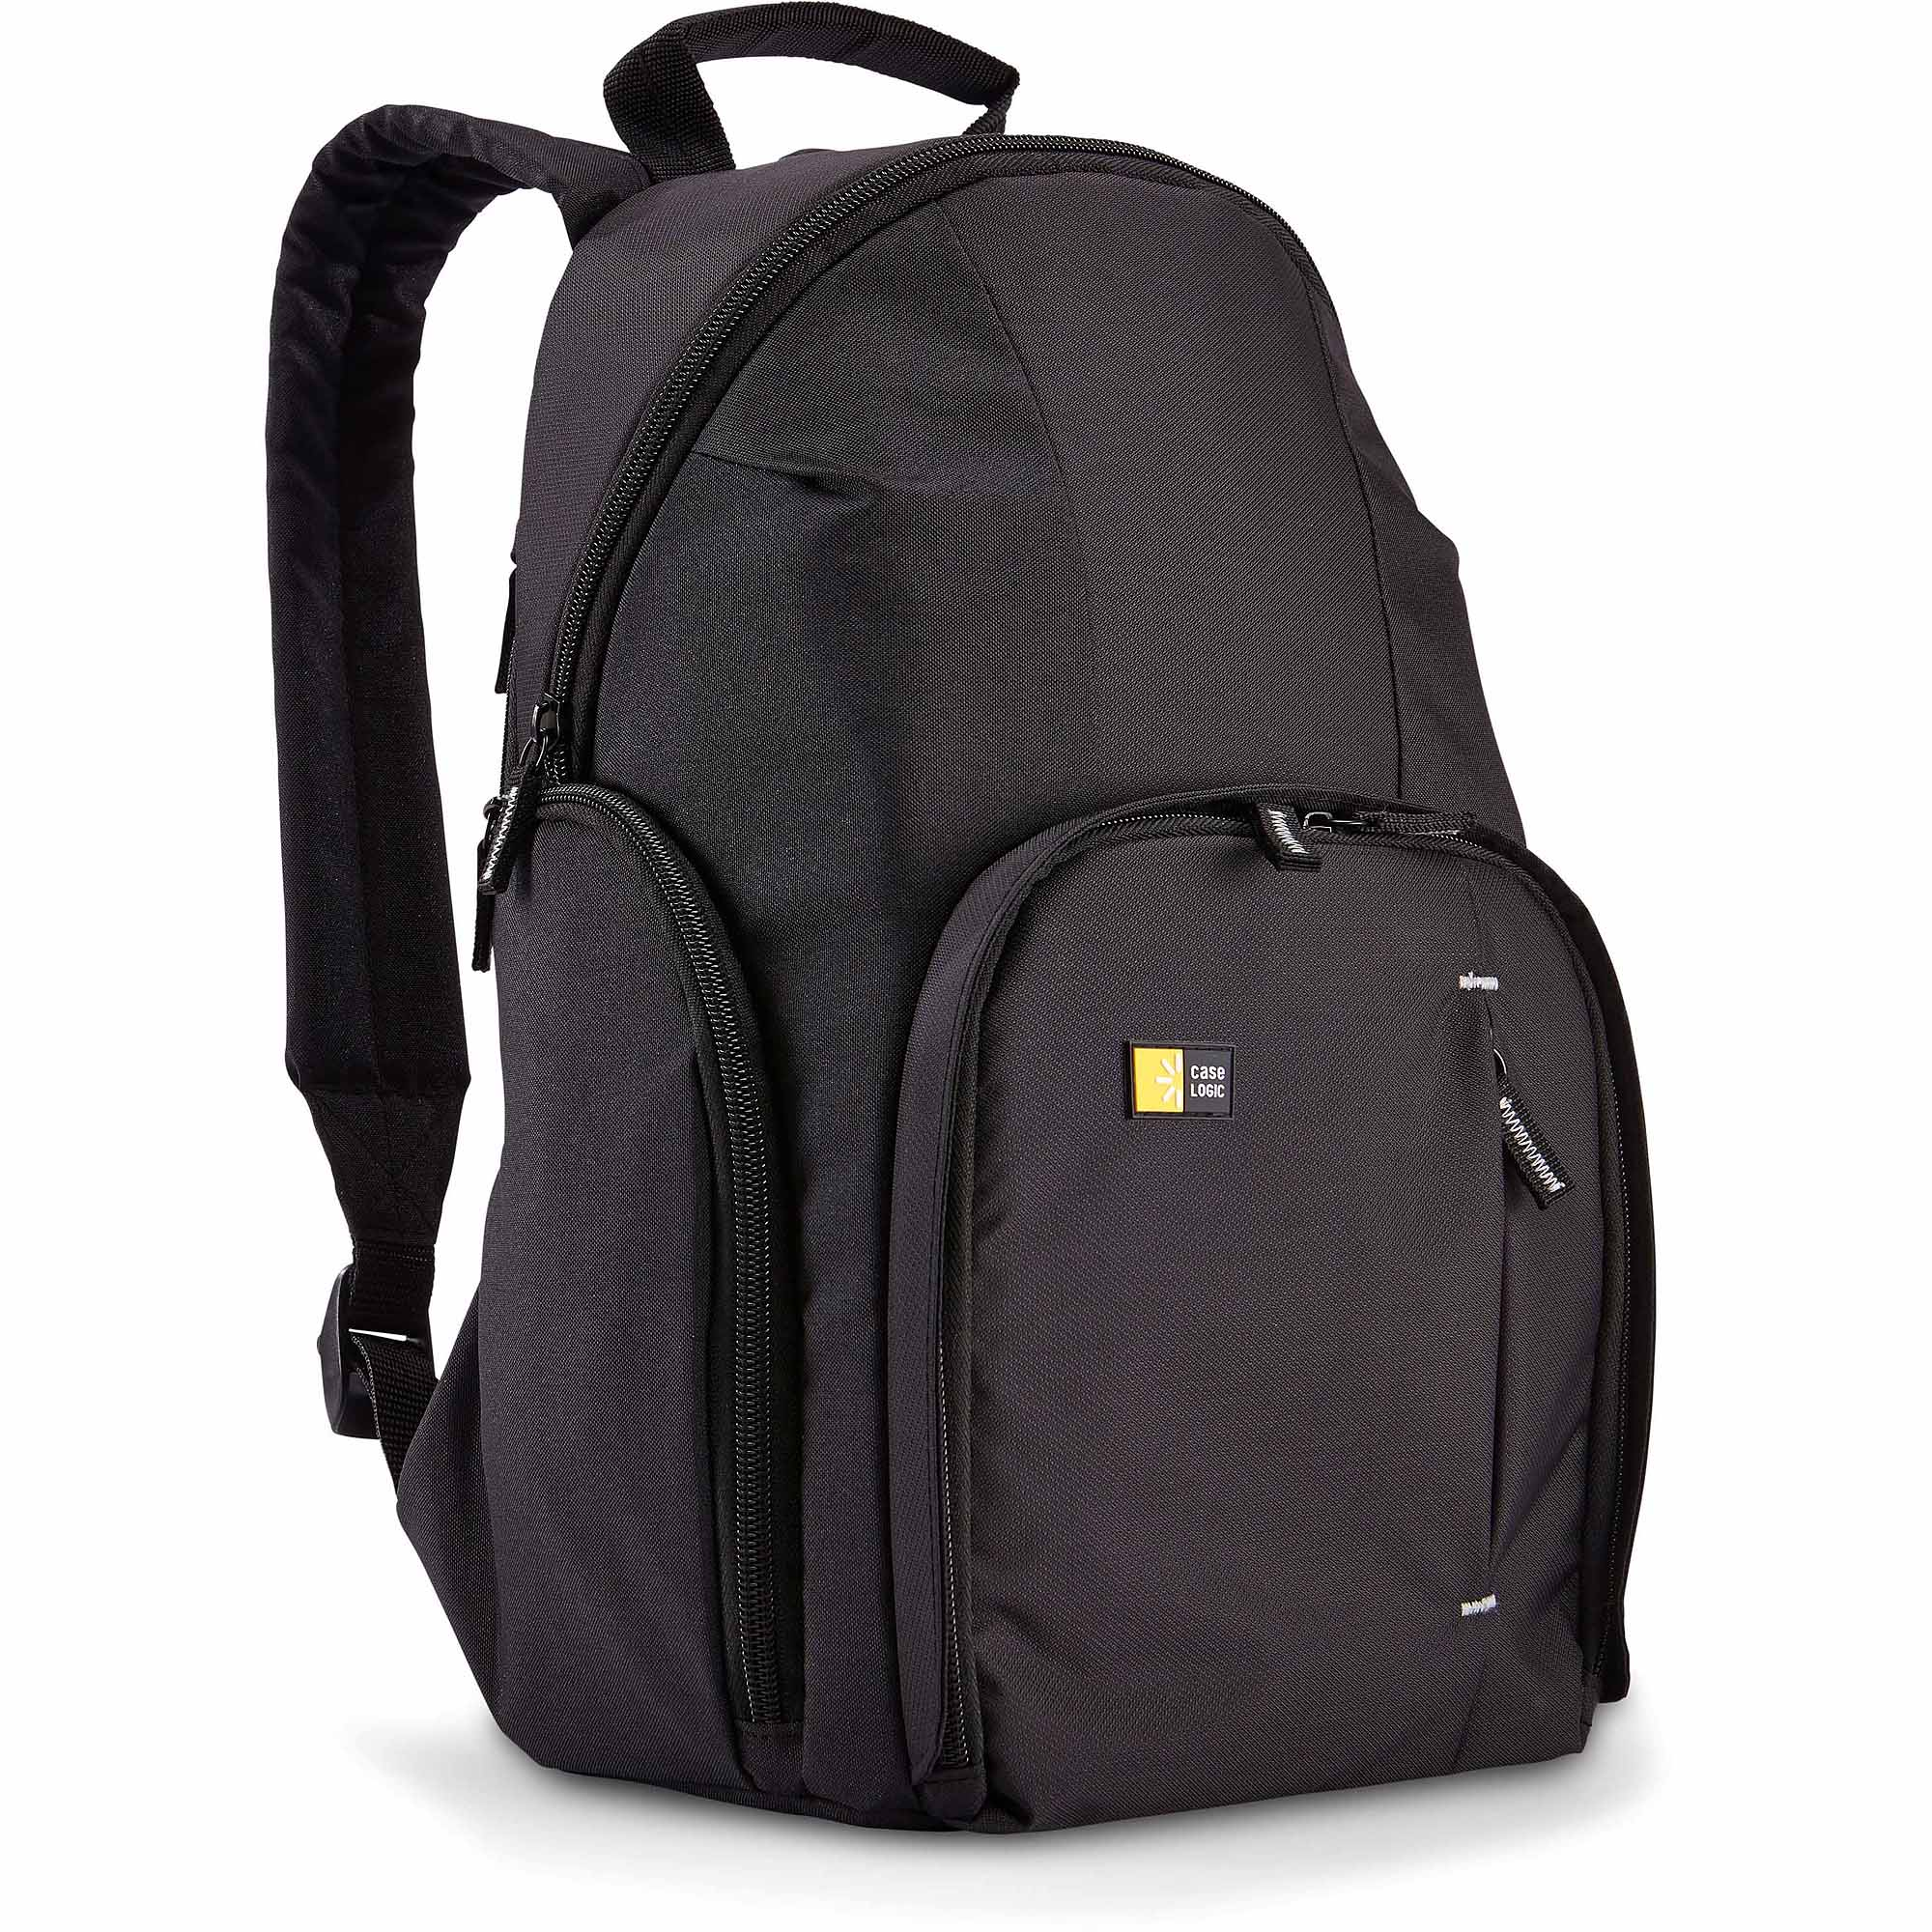 Case Logic TBC-411 DSLR Compact Camera and Apple iPad Backpack, Black by Case Logic